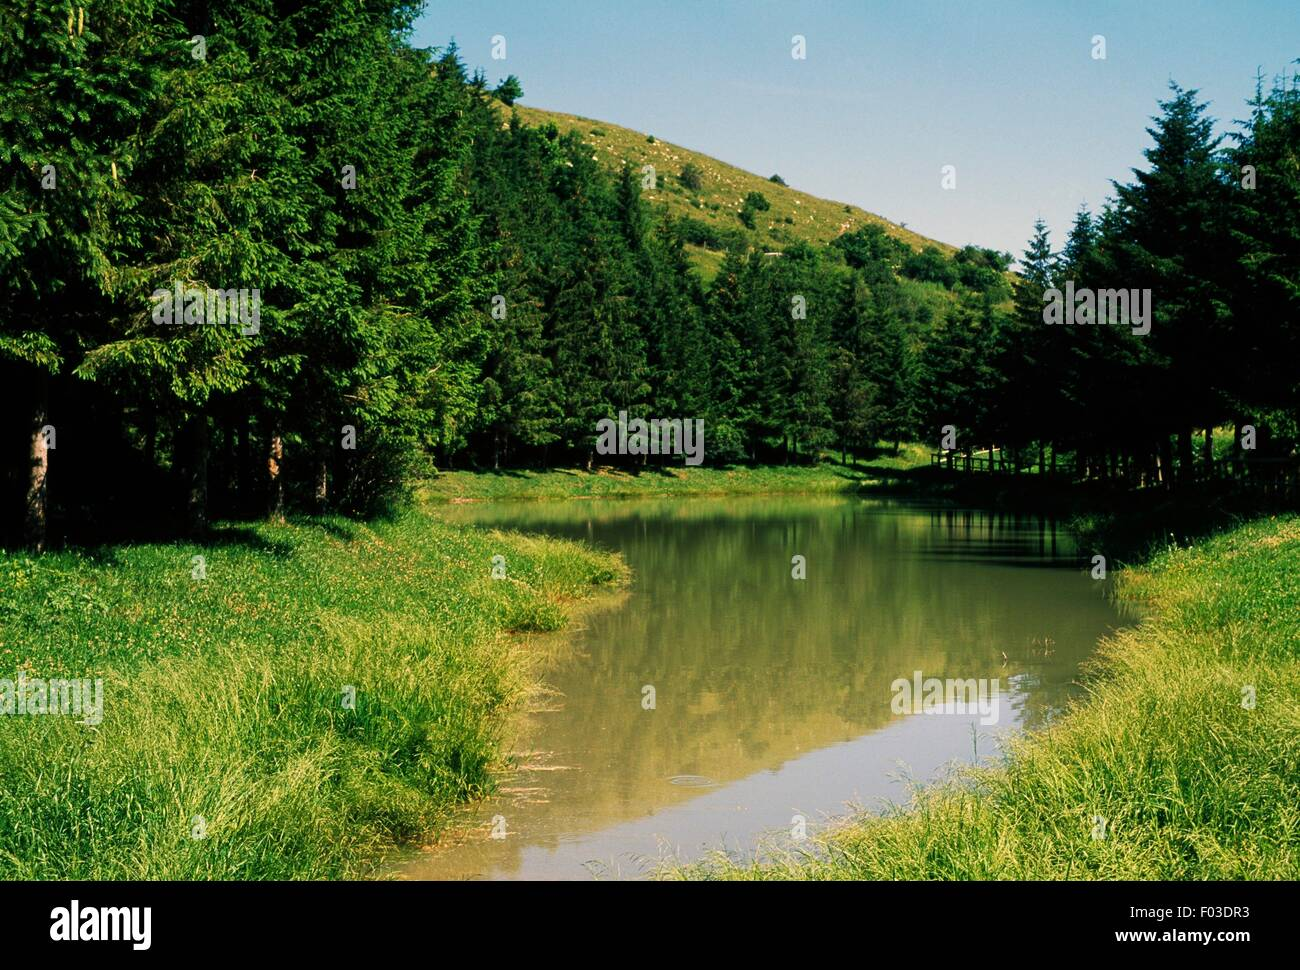 A body of water in the Natural Park of Sasso Simone and Simoncello, Montefeltro, Marche, Italy. - Stock Image